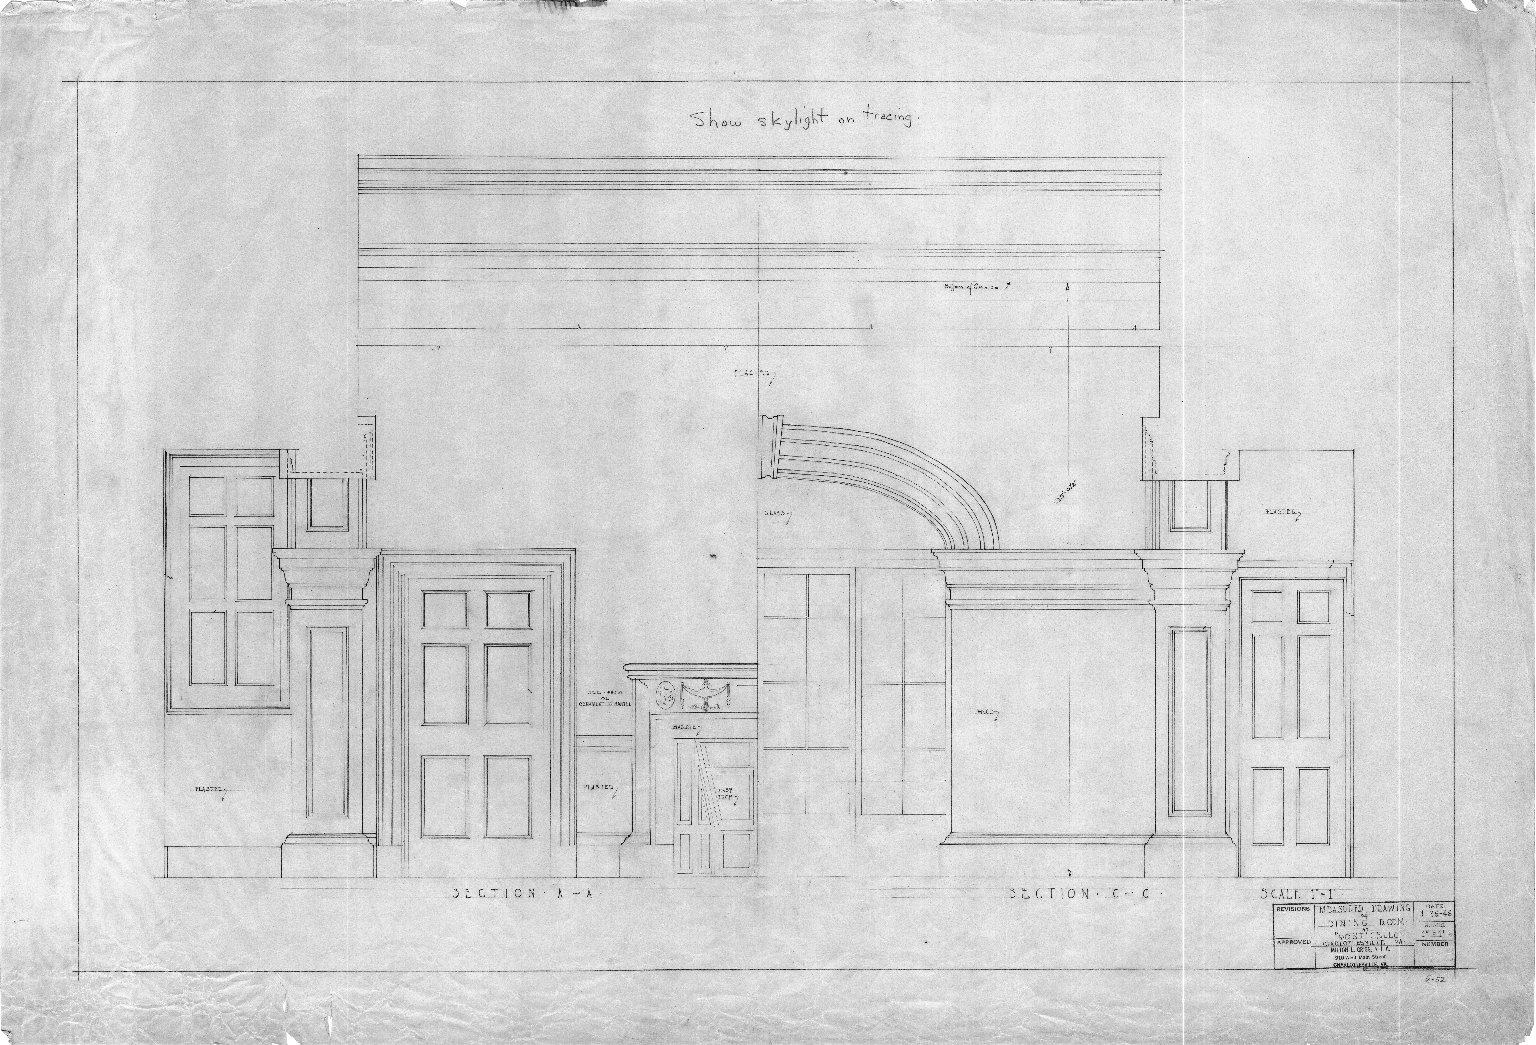 Monticello, Dining Room measured drawings